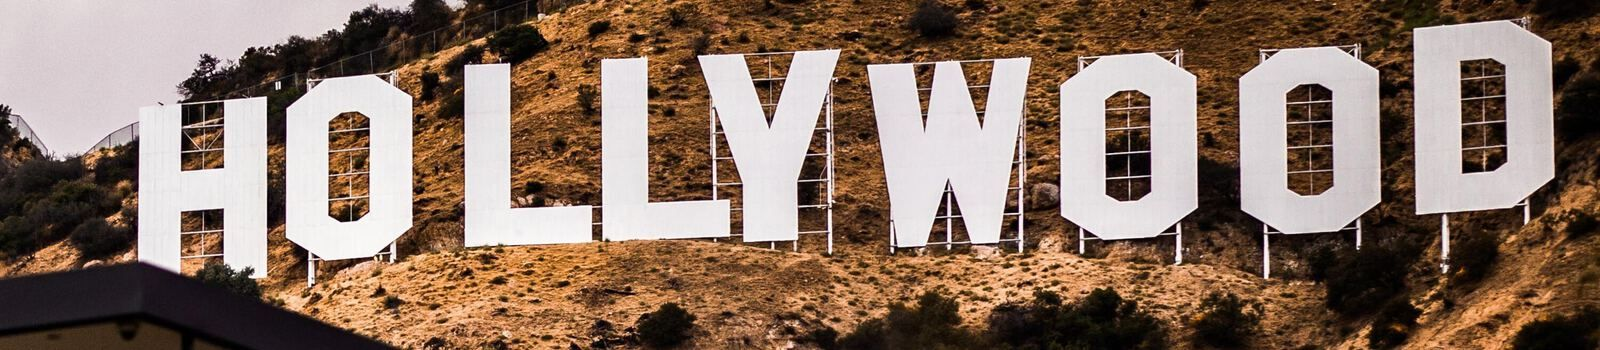 Things to Do in Hollywood Banner